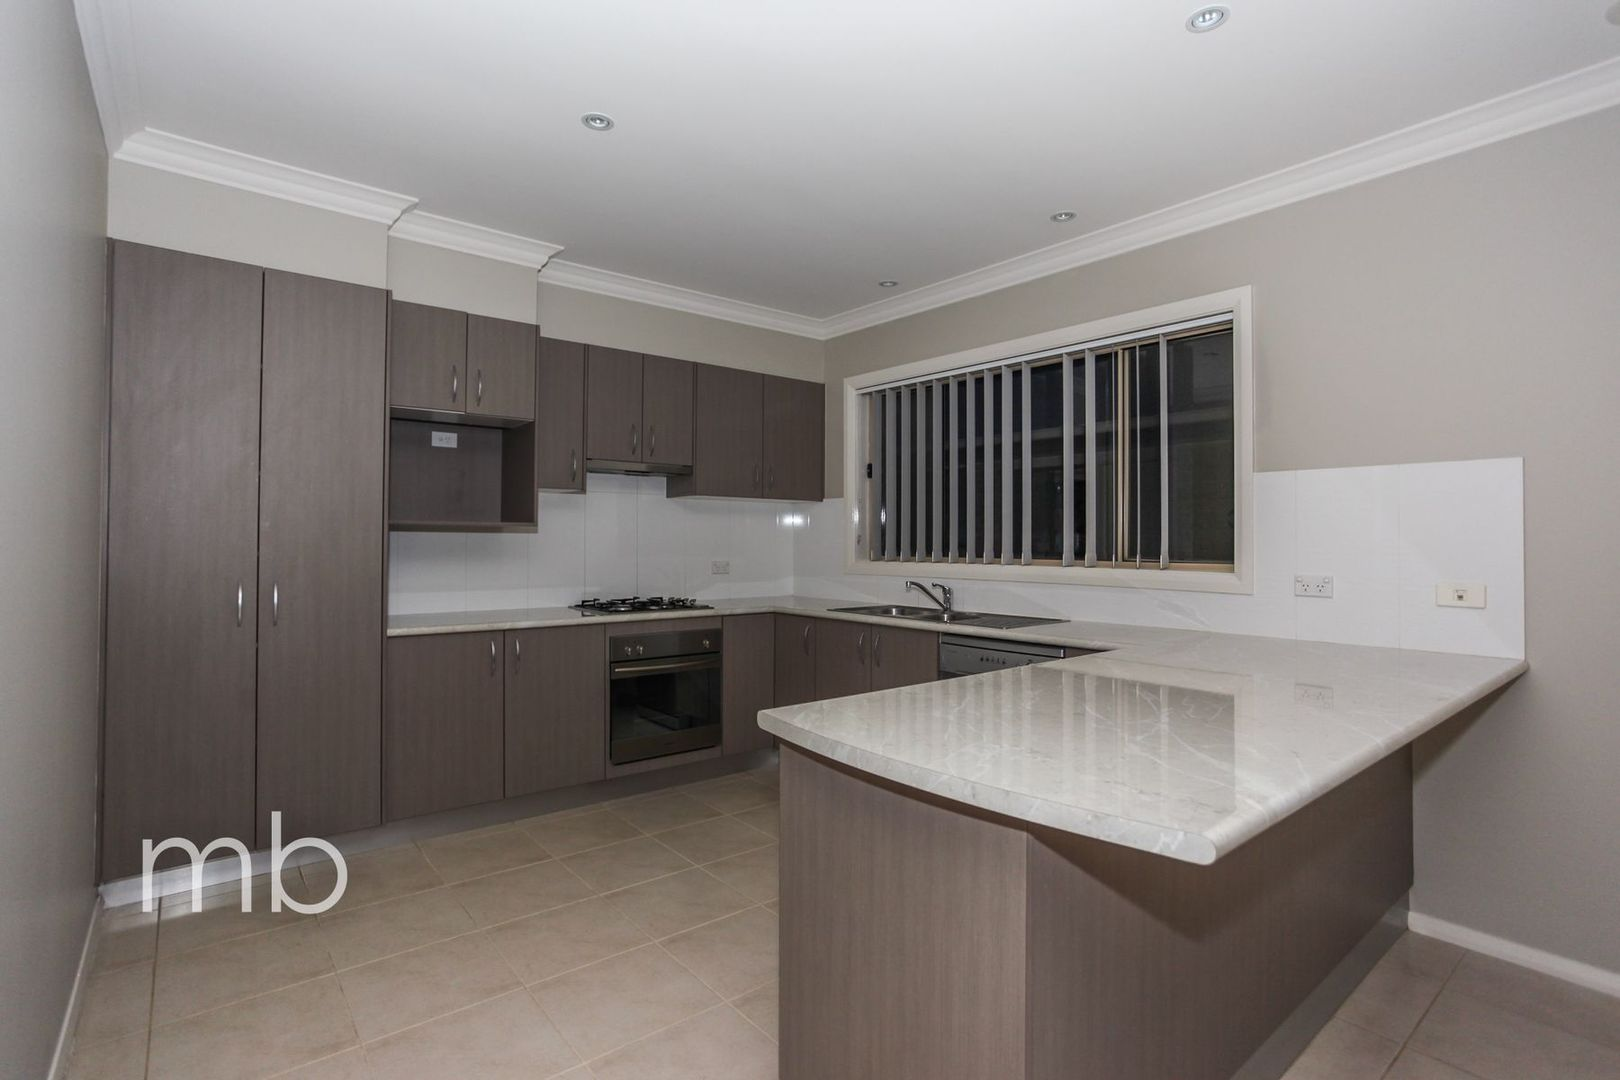 1 Romano Drive, Orange NSW 2800, Image 1